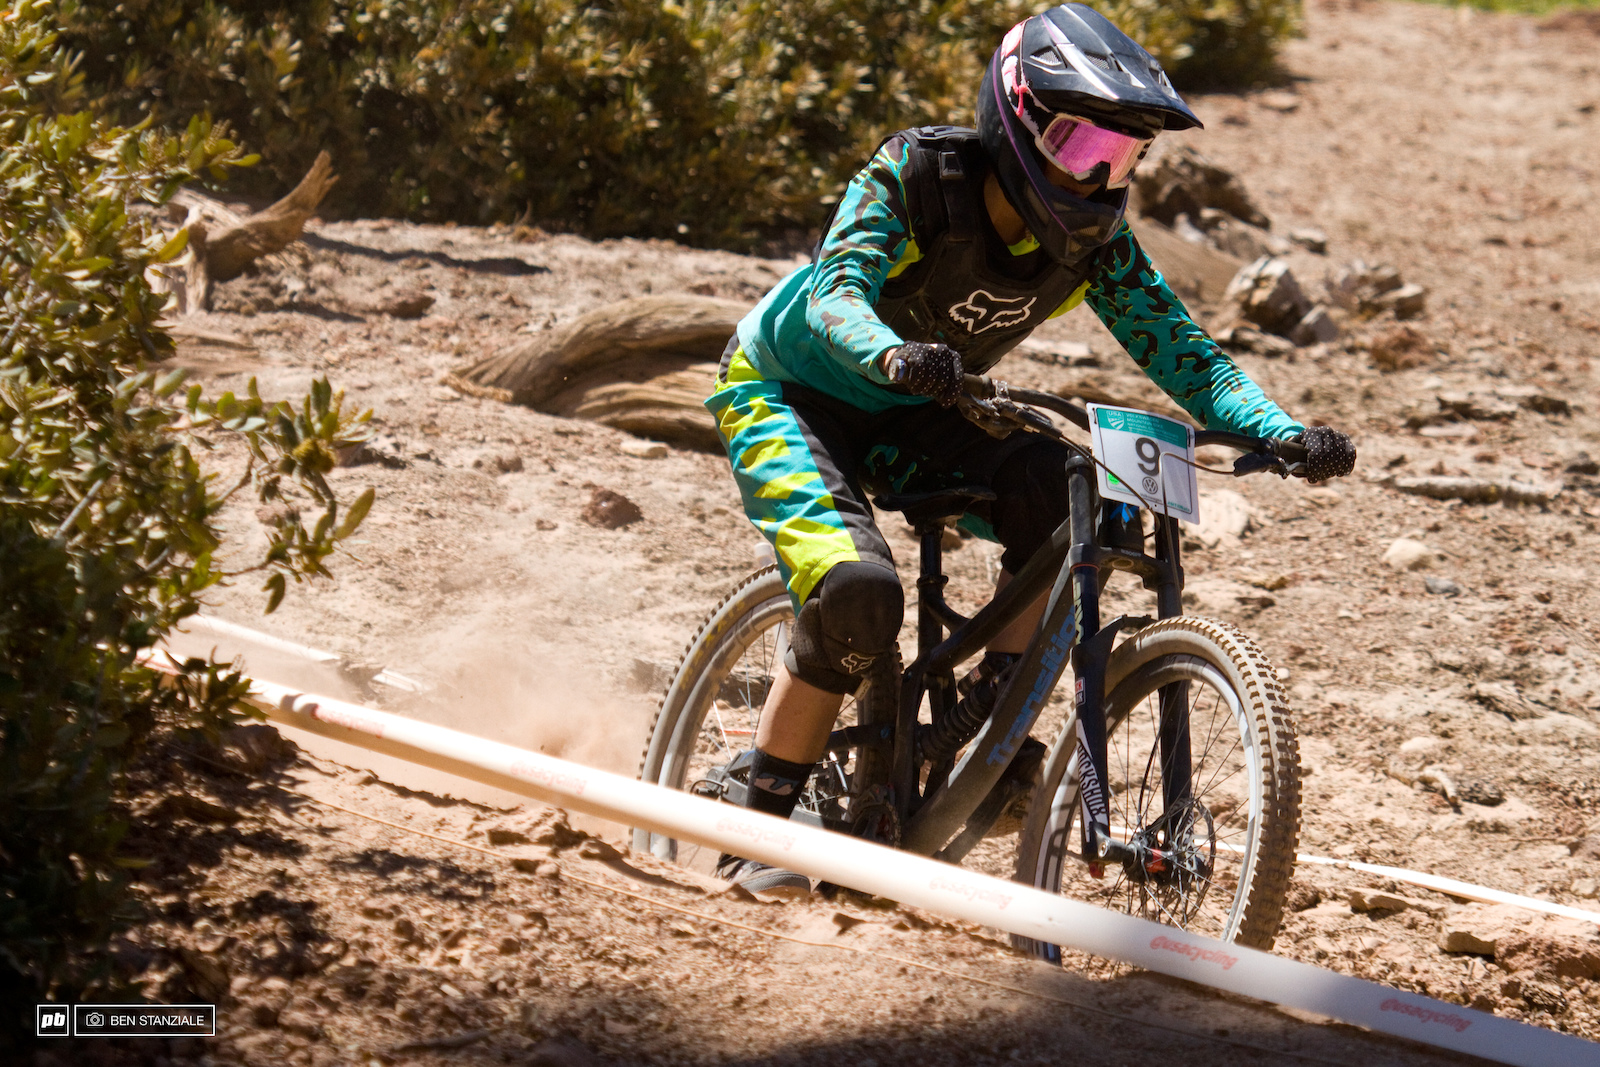 Wentz out of Reno NV makes the 5th spot in Pro Women s Downhill.